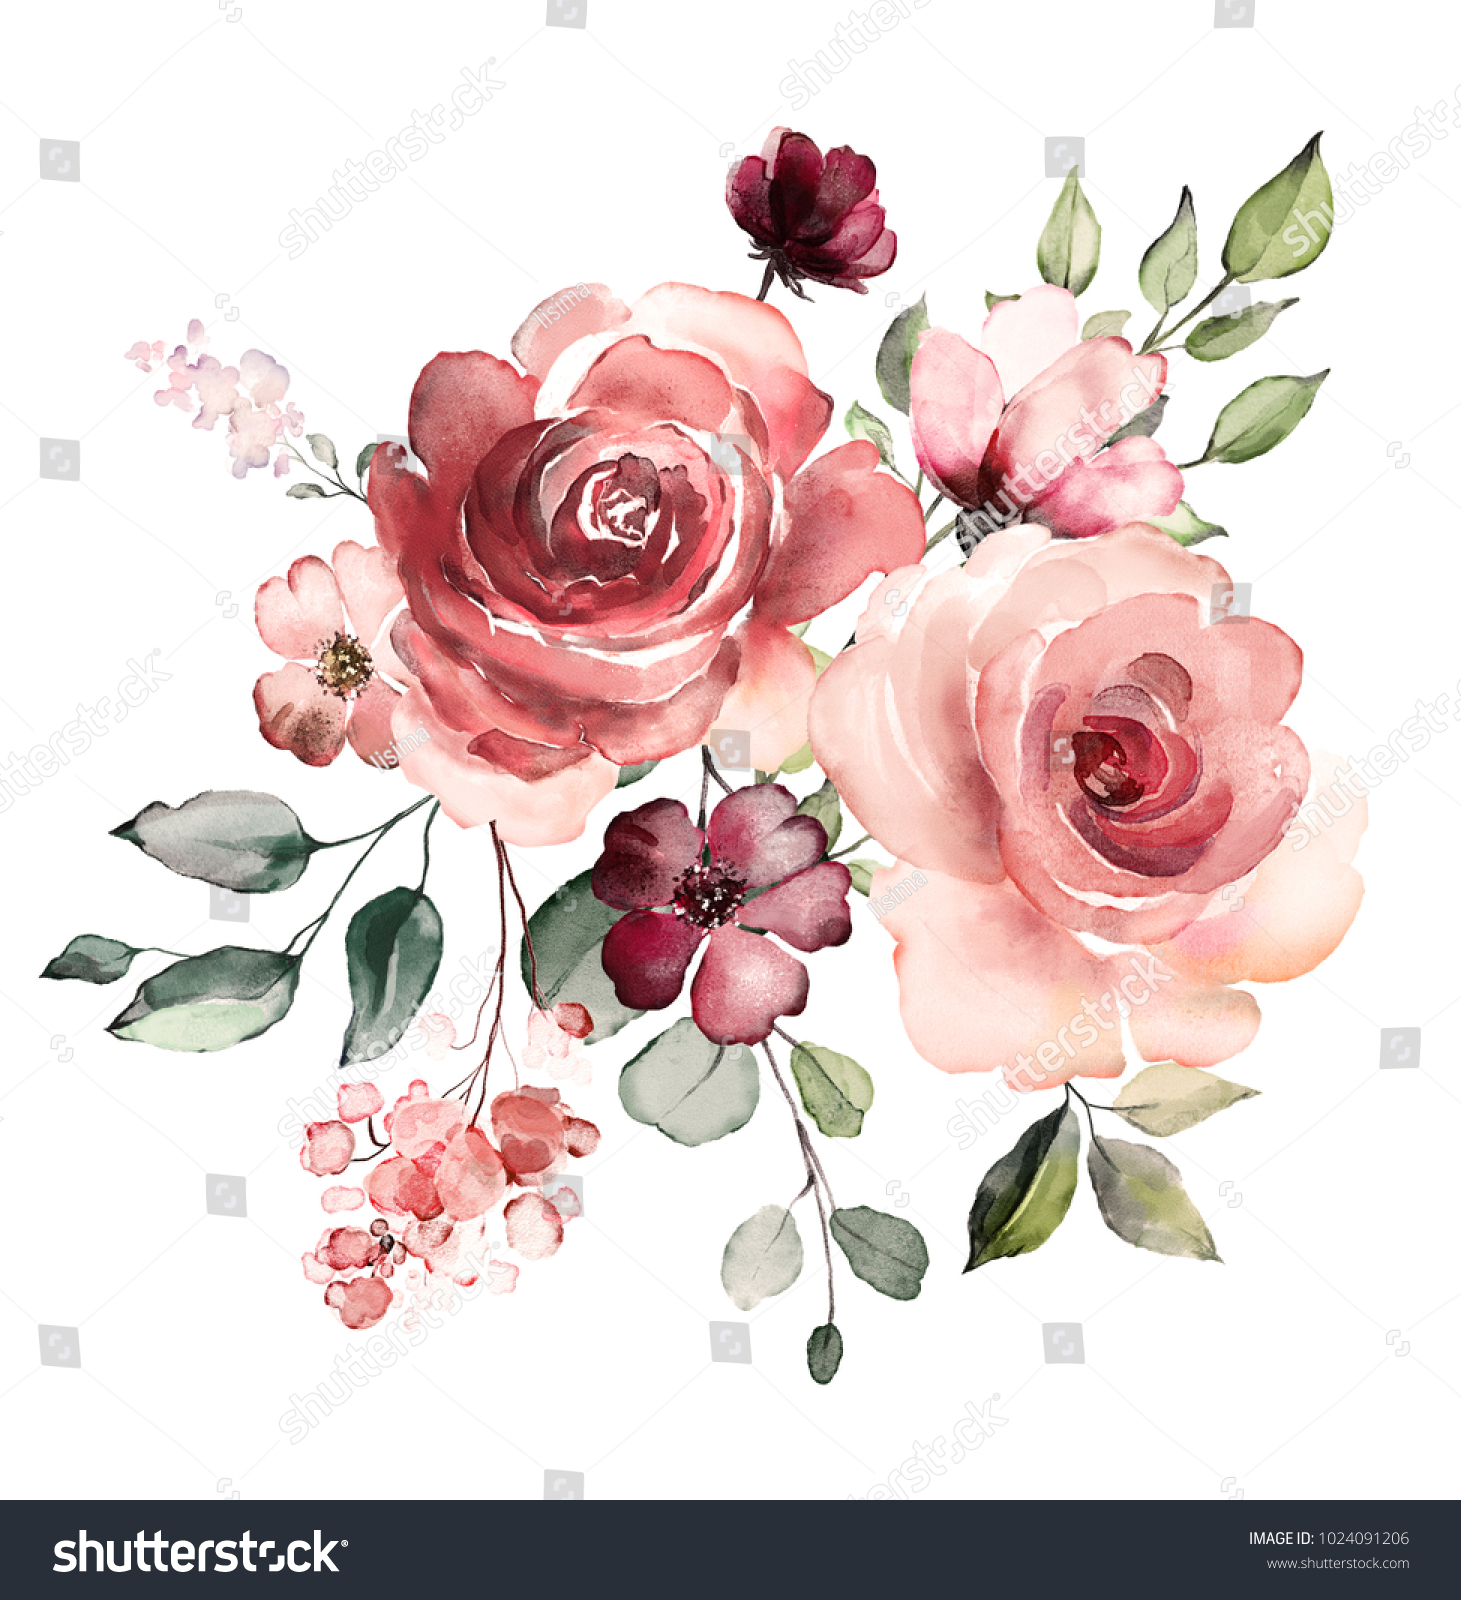 decorative watercolor flowers. floral illustration, Leaf and buds ...